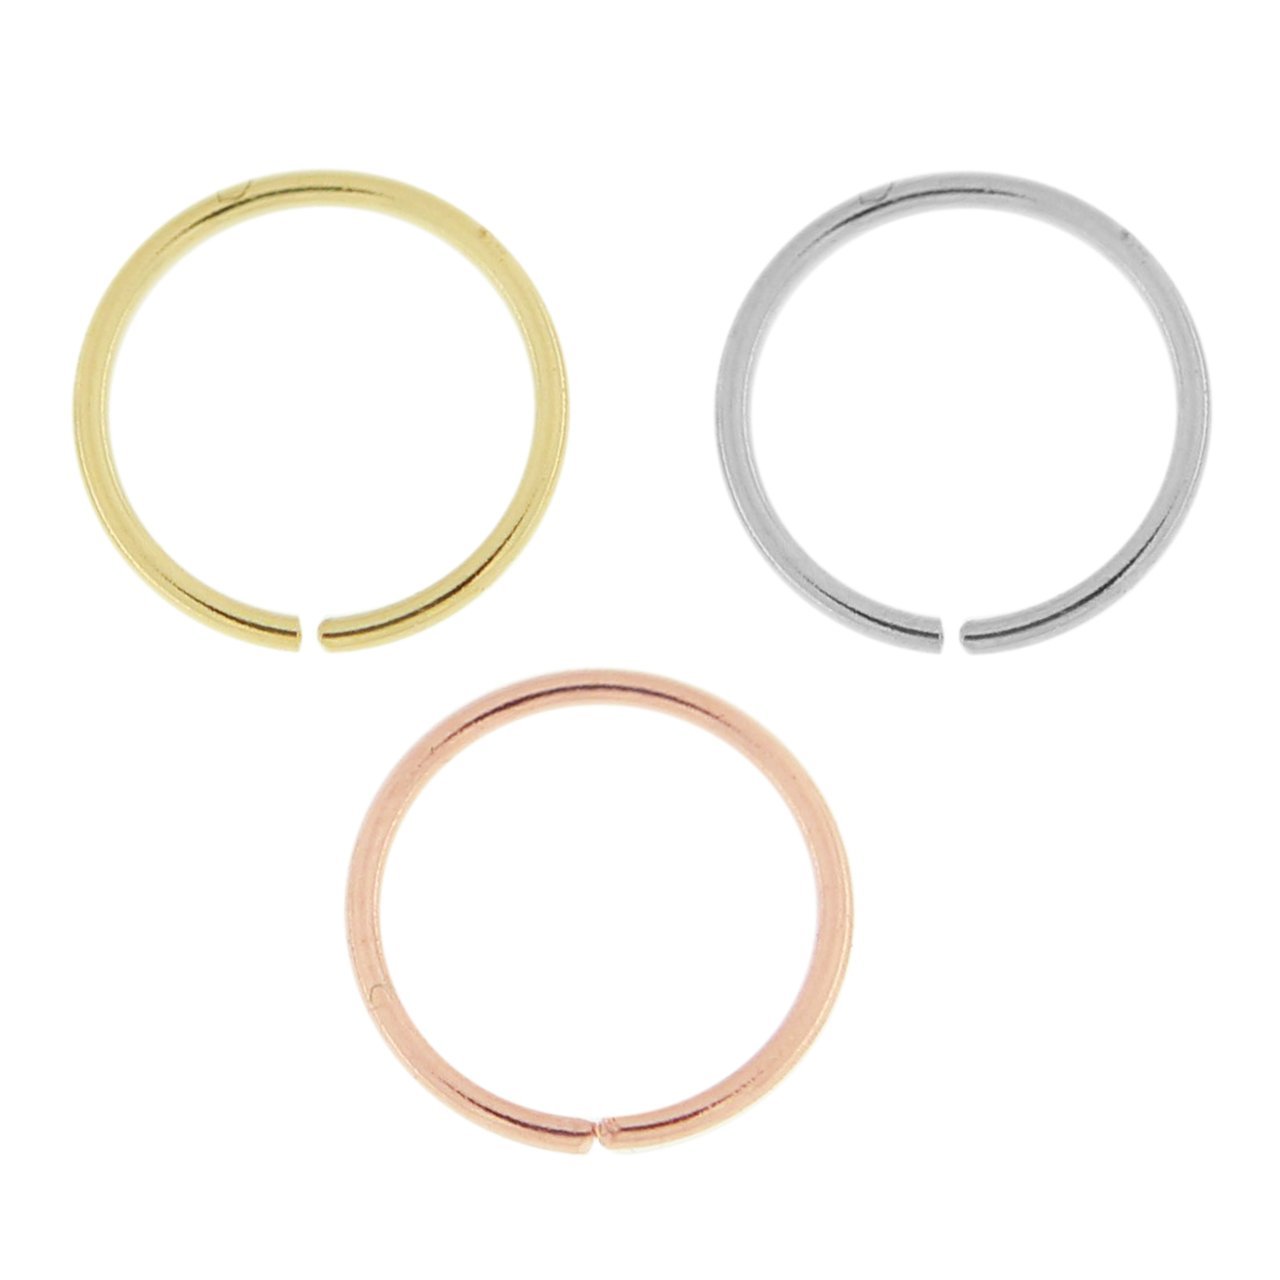 3 Pieces Box Set of 14 Karat Solid Gold 20 Gauge - 6MM Length Seamless Continuous Nose Hoop Ring by PiercingPoint